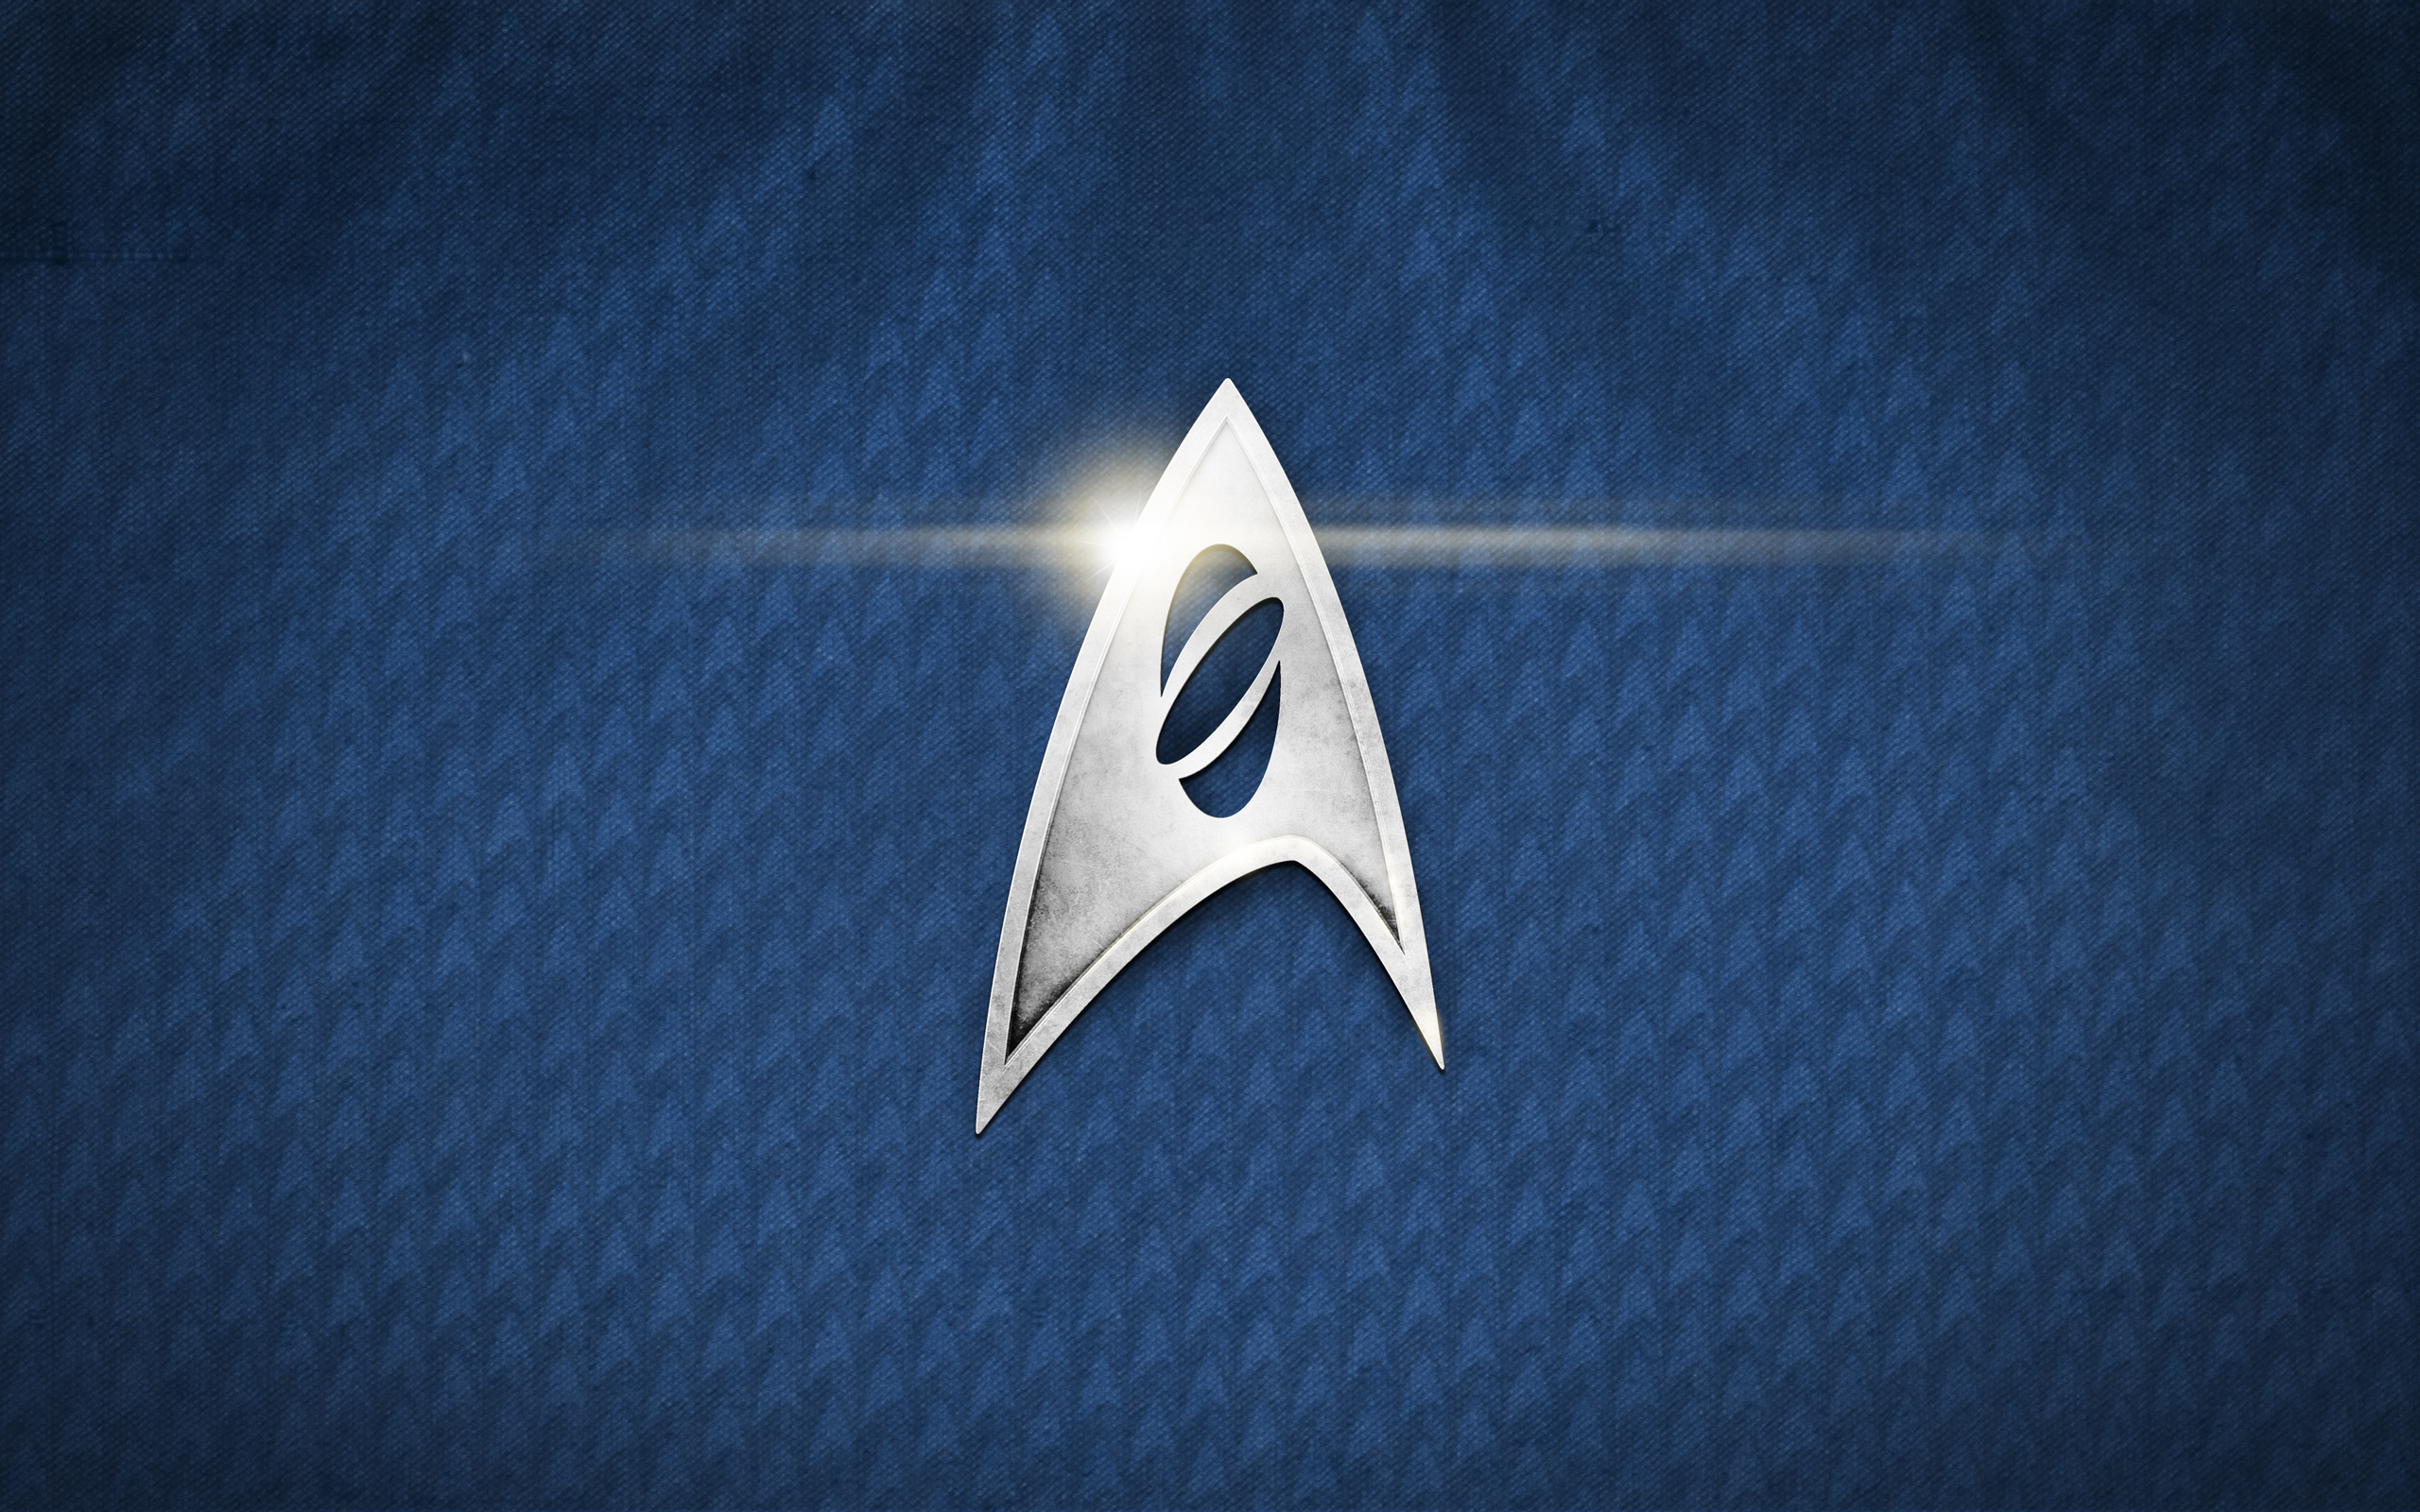 Star Trek Wallpapers Awesome Wallpapers 2560x1600